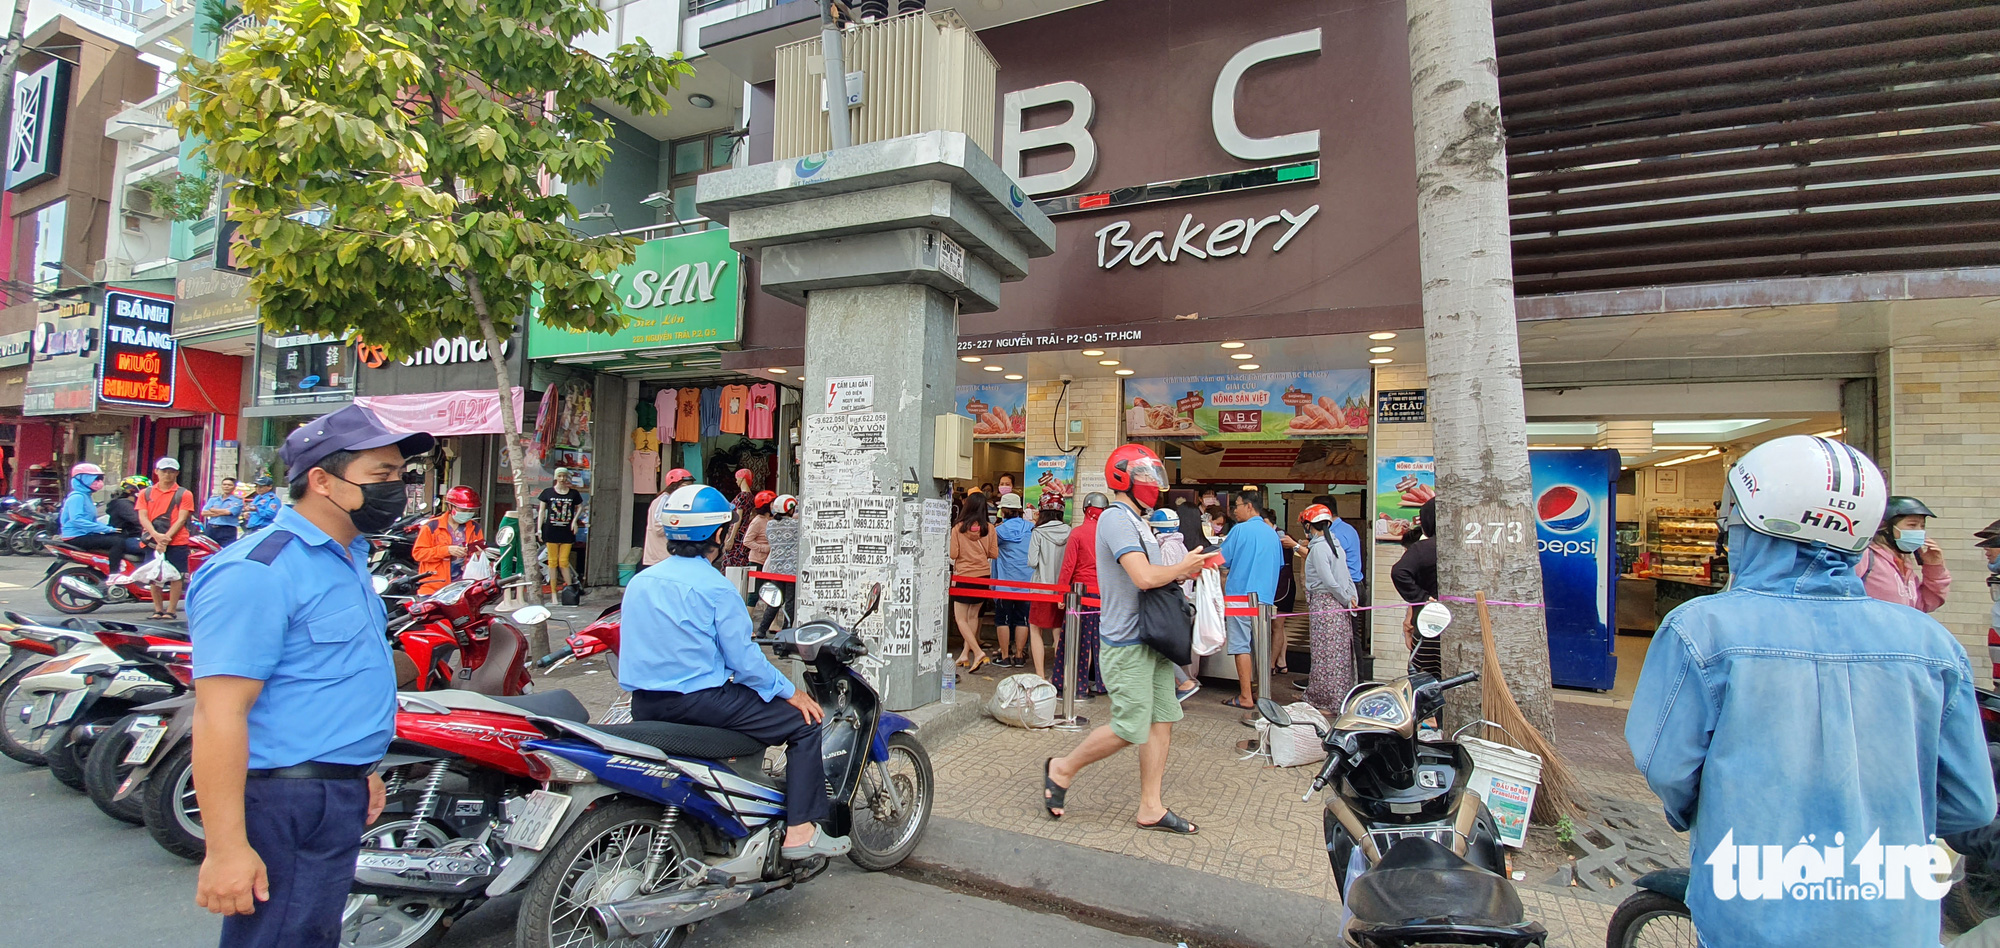 Customers queue to buy dragon fruit bread at an ABC Bakery store on Nguyen Trai Street in District 5, Ho Chi Minh City, February 16, 2020. Photo: Cong Trung / Tuoi Tre